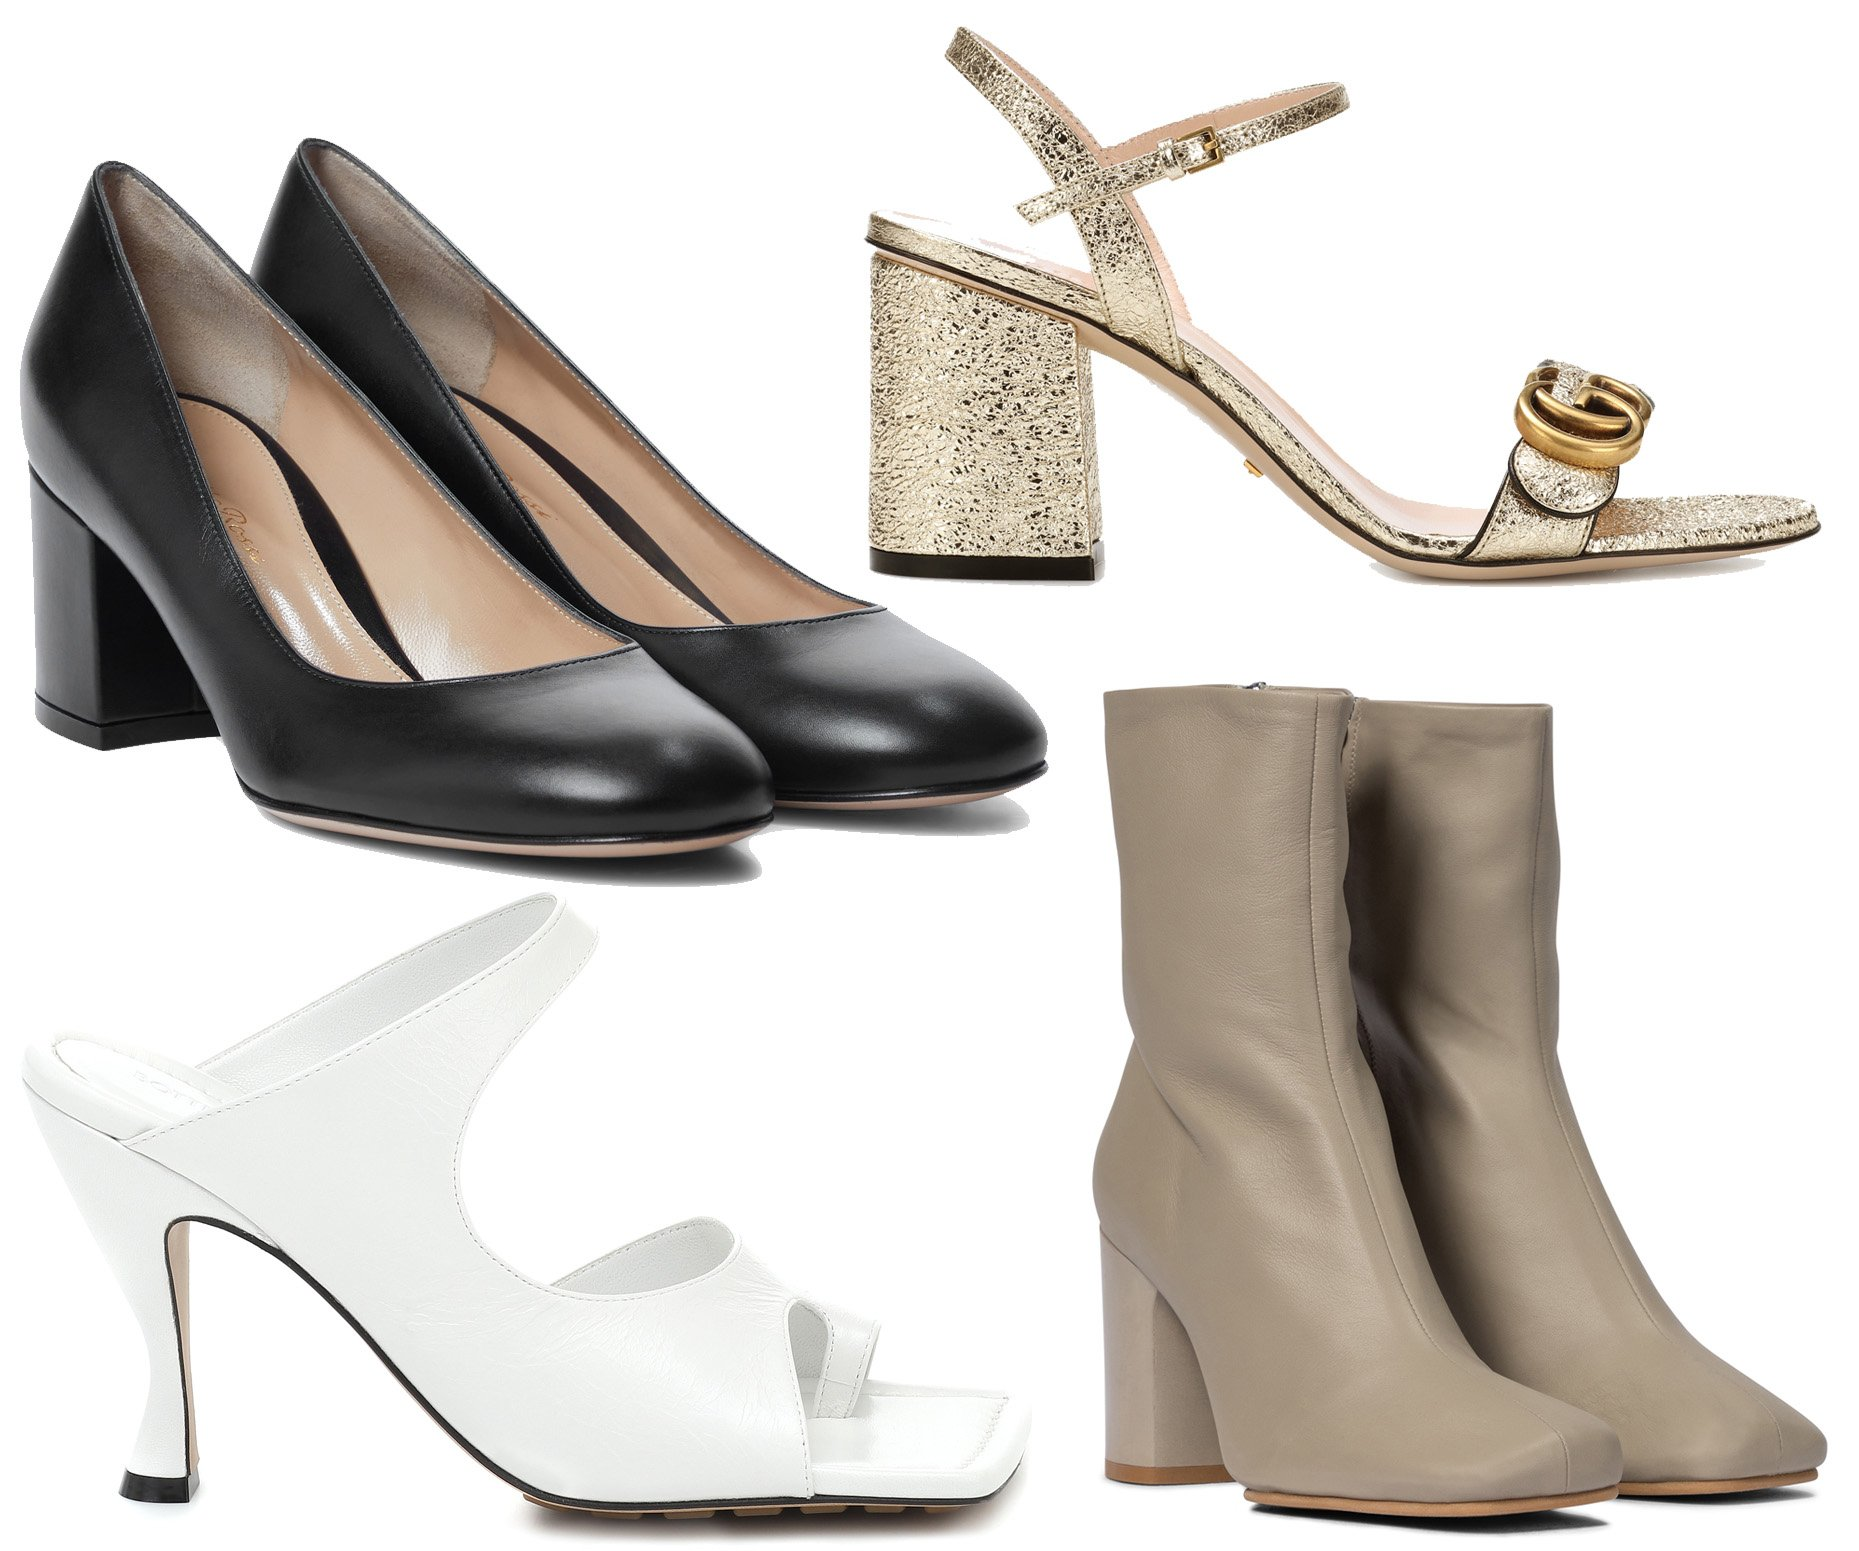 Calfskin leather is the most popular material used for shoes as it is timeless and durable